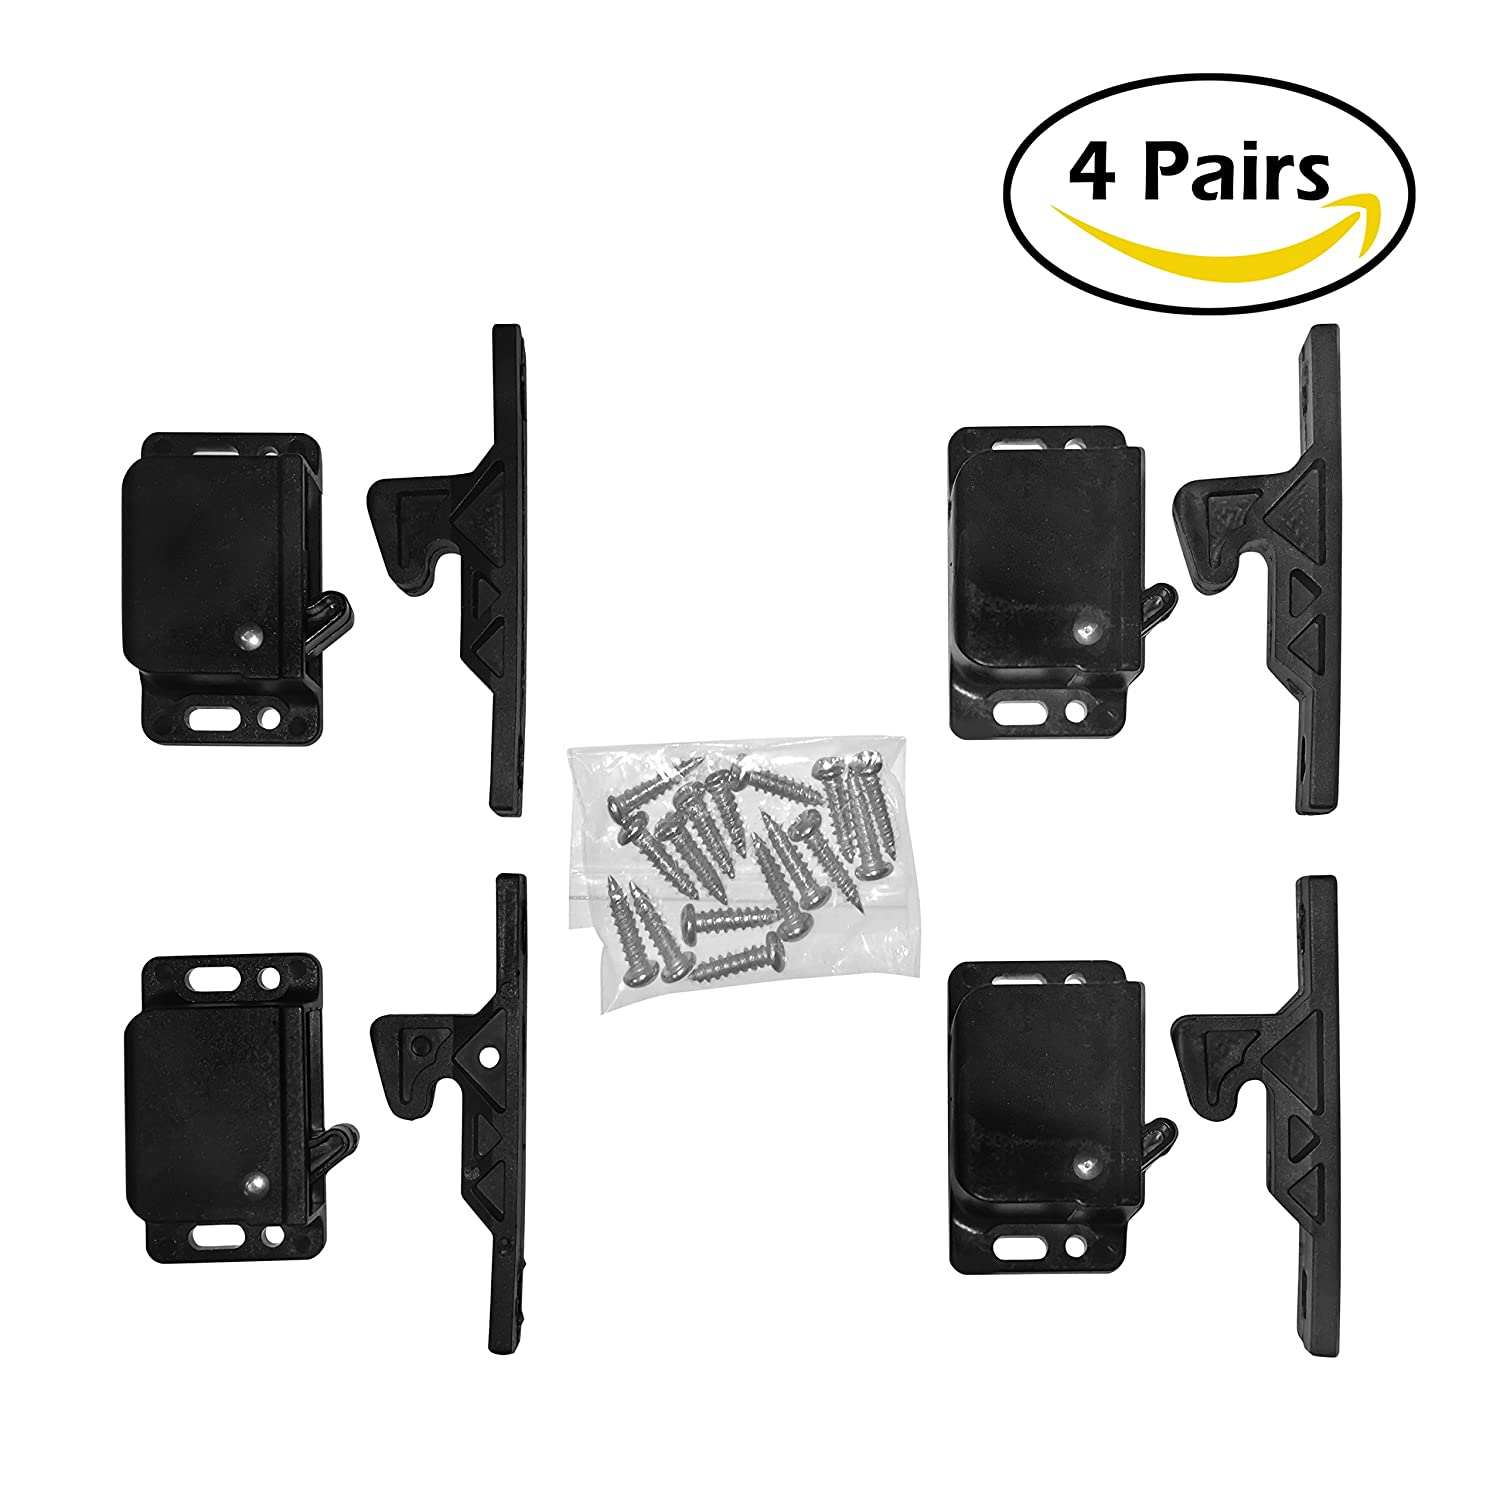 CampN -4 Pair- Push Catch Perfect RV 5 lbs Pull Force Motor Home Camper Holder RV Cabinet Doors Mounting Hardware Latch Grabber Trailer OEM Replacement Cargo Trailer